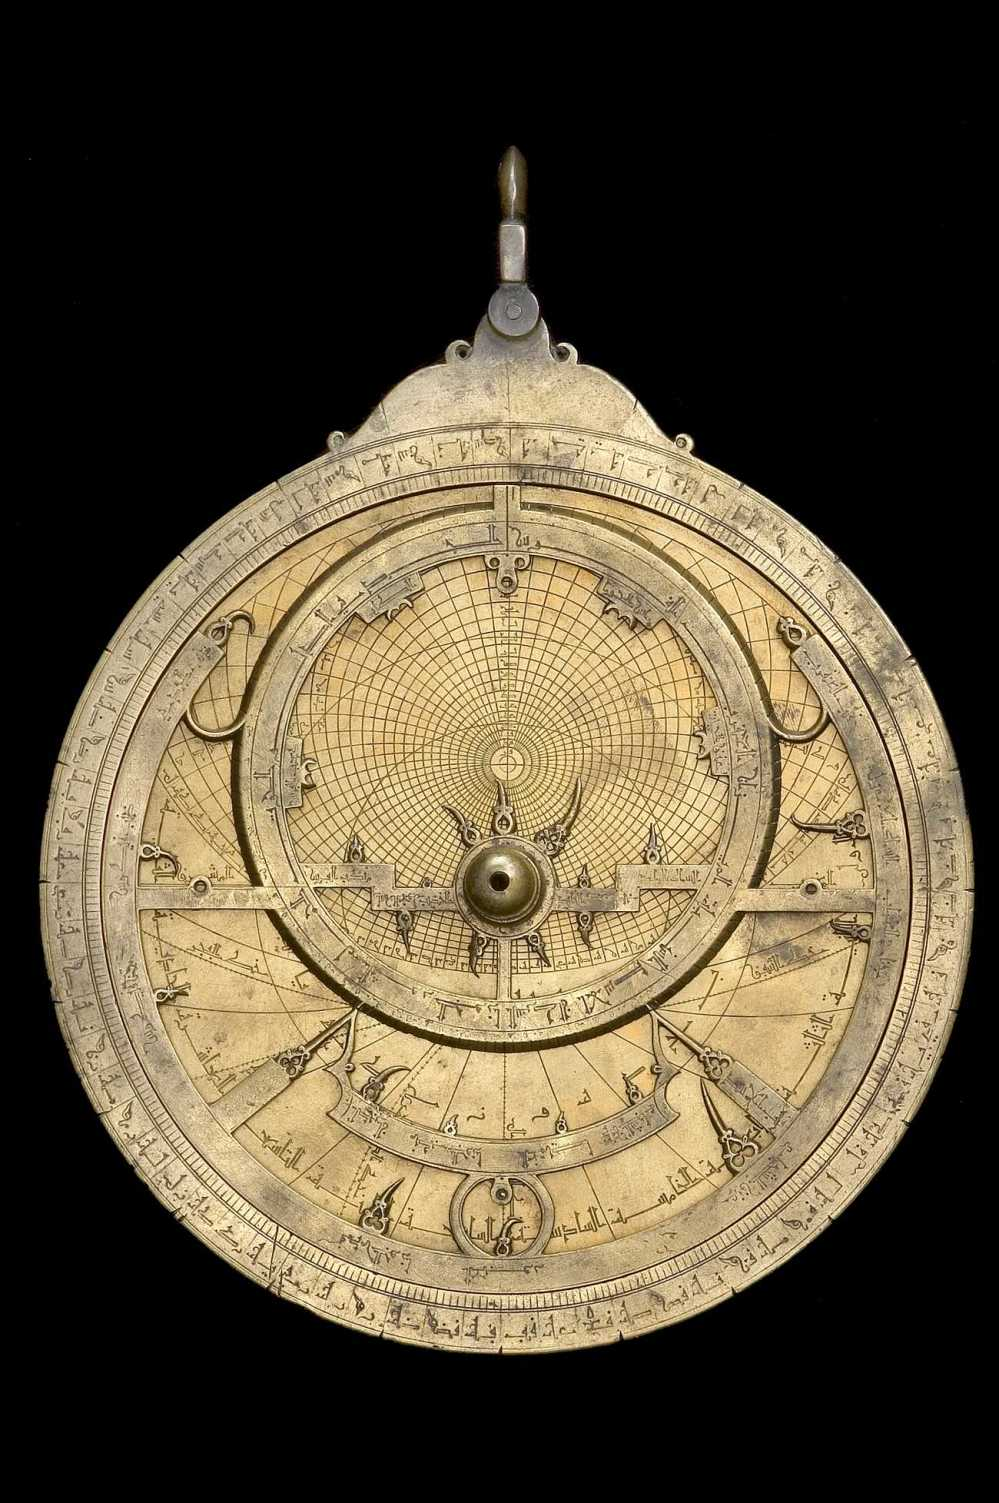 preview image for Astrolabe, by Muhammad ibn Fattuh al-Khama'iri, Seville, 1221/2